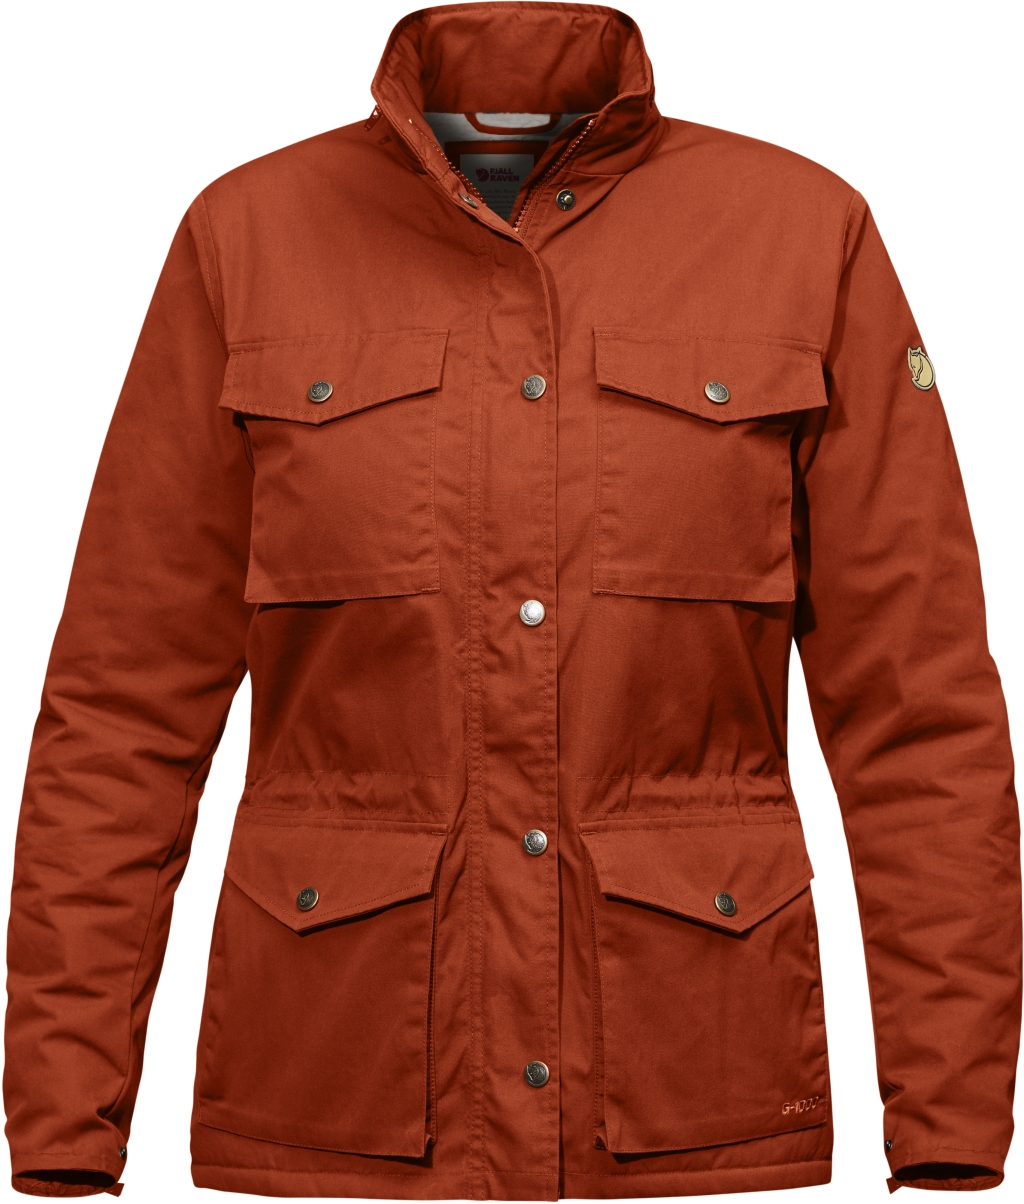 FjallRaven Raven Winter Jacket W Autumn Leaf-30